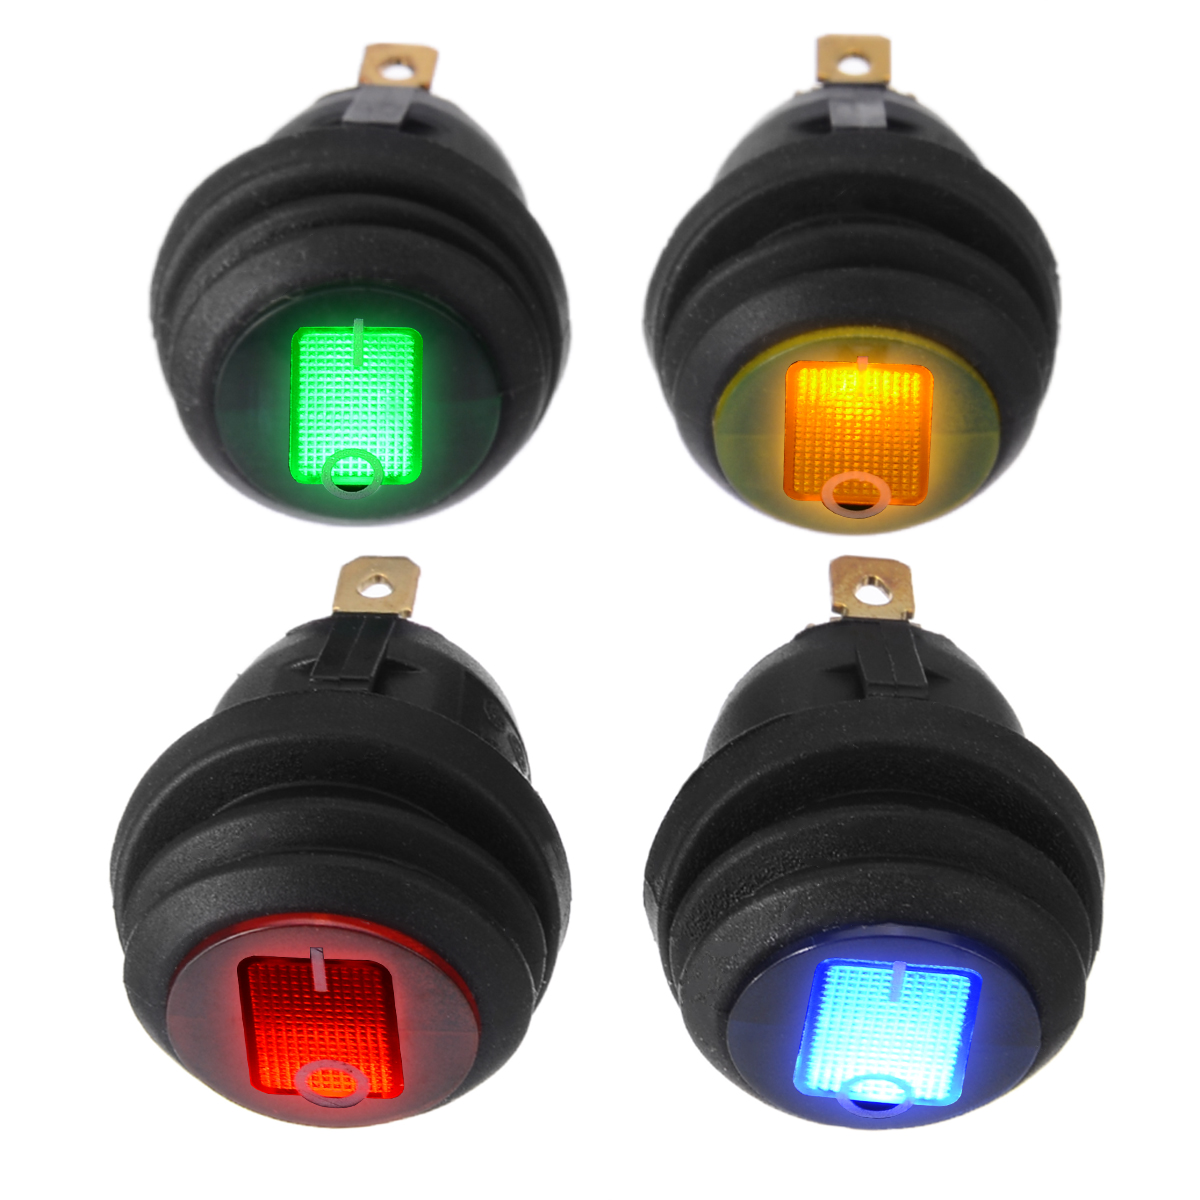 4pcs 12V 12A LED Car Boat On/Off 3-Pin SPST Round Rocker Switch Waterproof Small Round Boat Rocker Switches